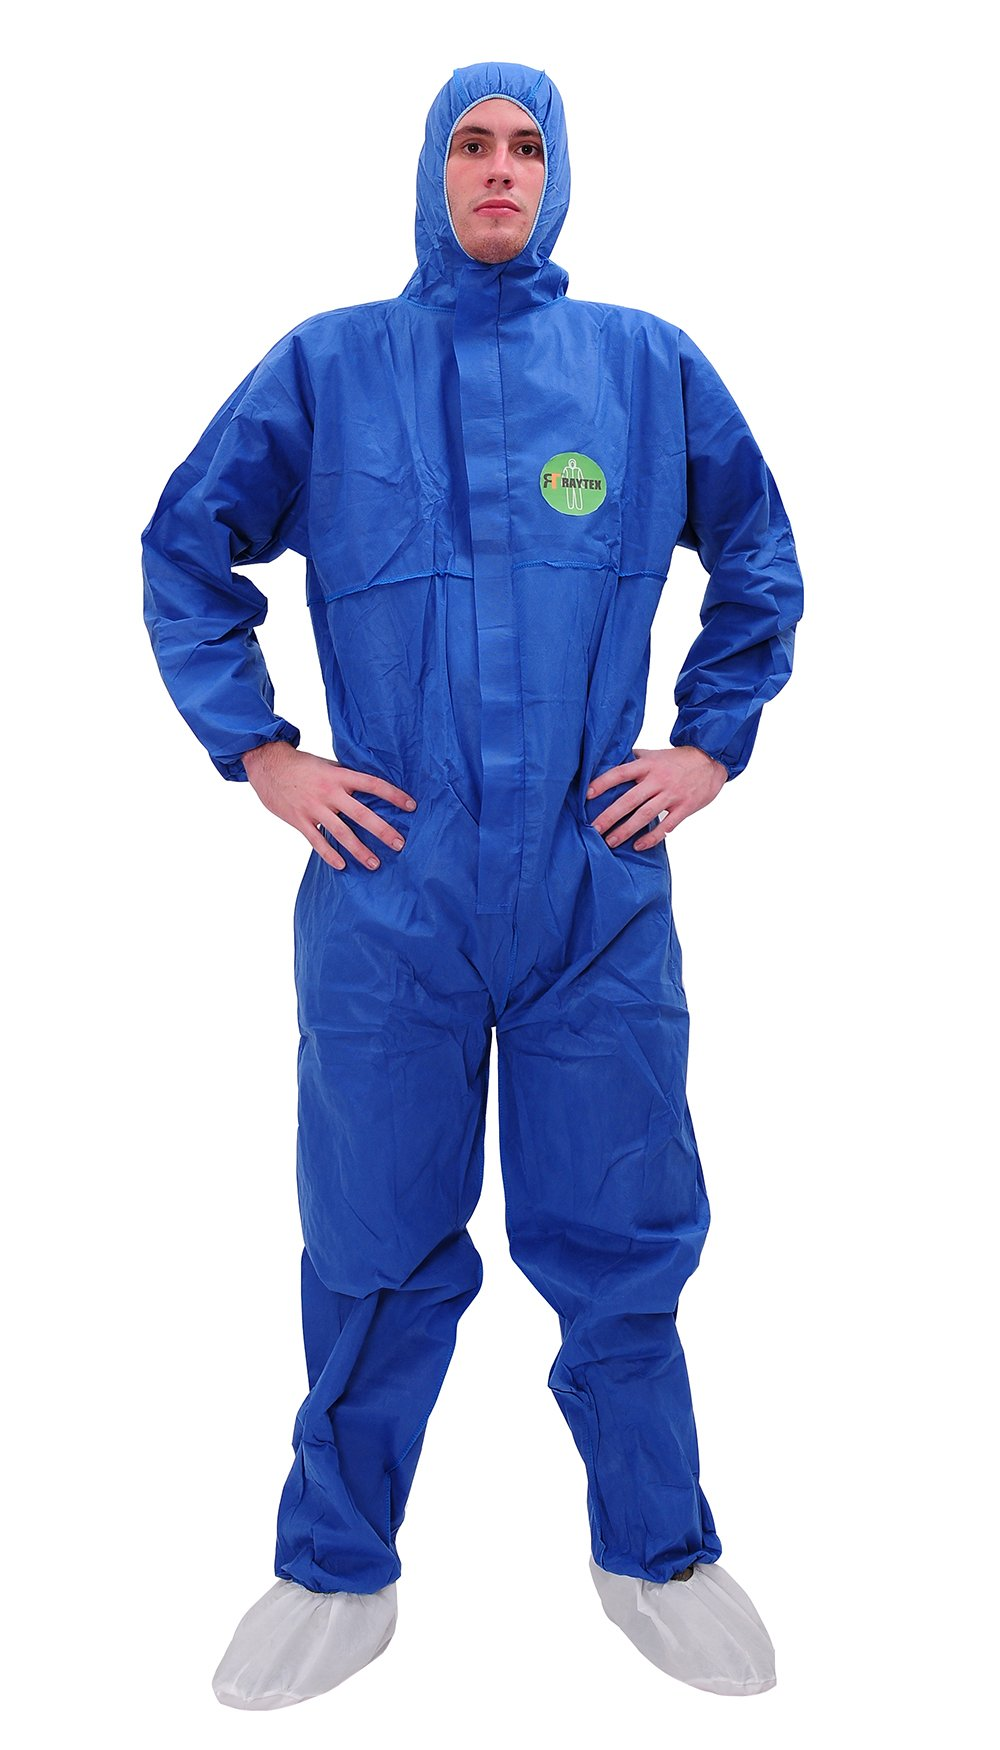 Raygard 30303 SMS Disposable Coveralls Chemical Protective Suit Elastic at Cuffs, Ankles, Hood and Waist Zip Front Serged Seams for Spray Paint Mechanic Work(Large, Blue)